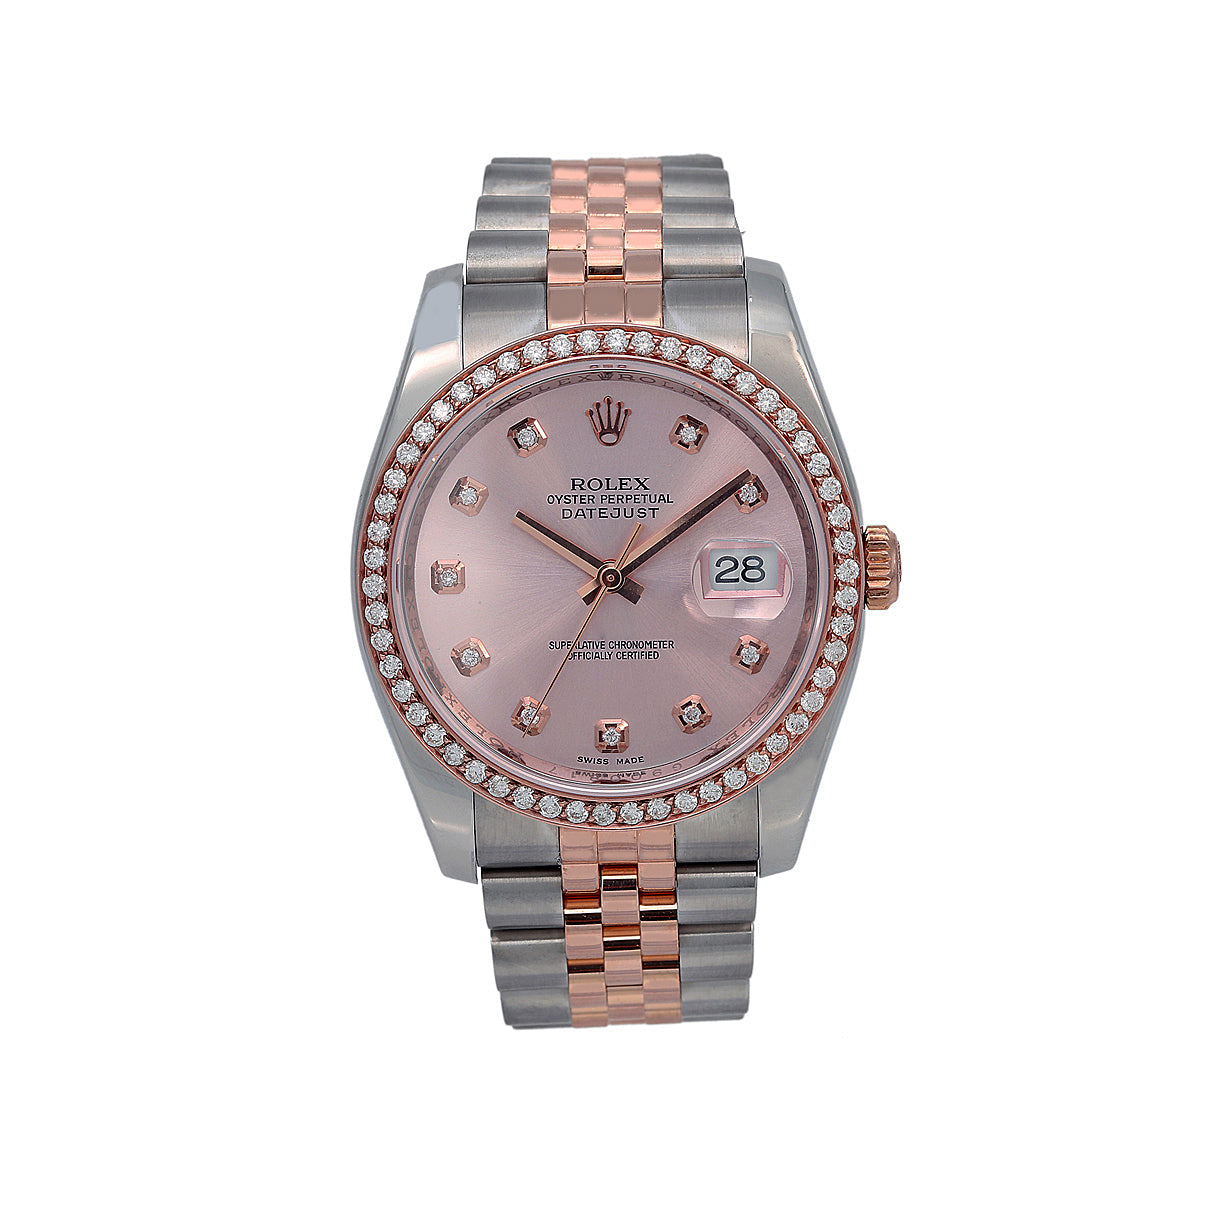 Rolex Datejust 116231 36MM Pink Diamond Dial With 1.20 CT Diamonds